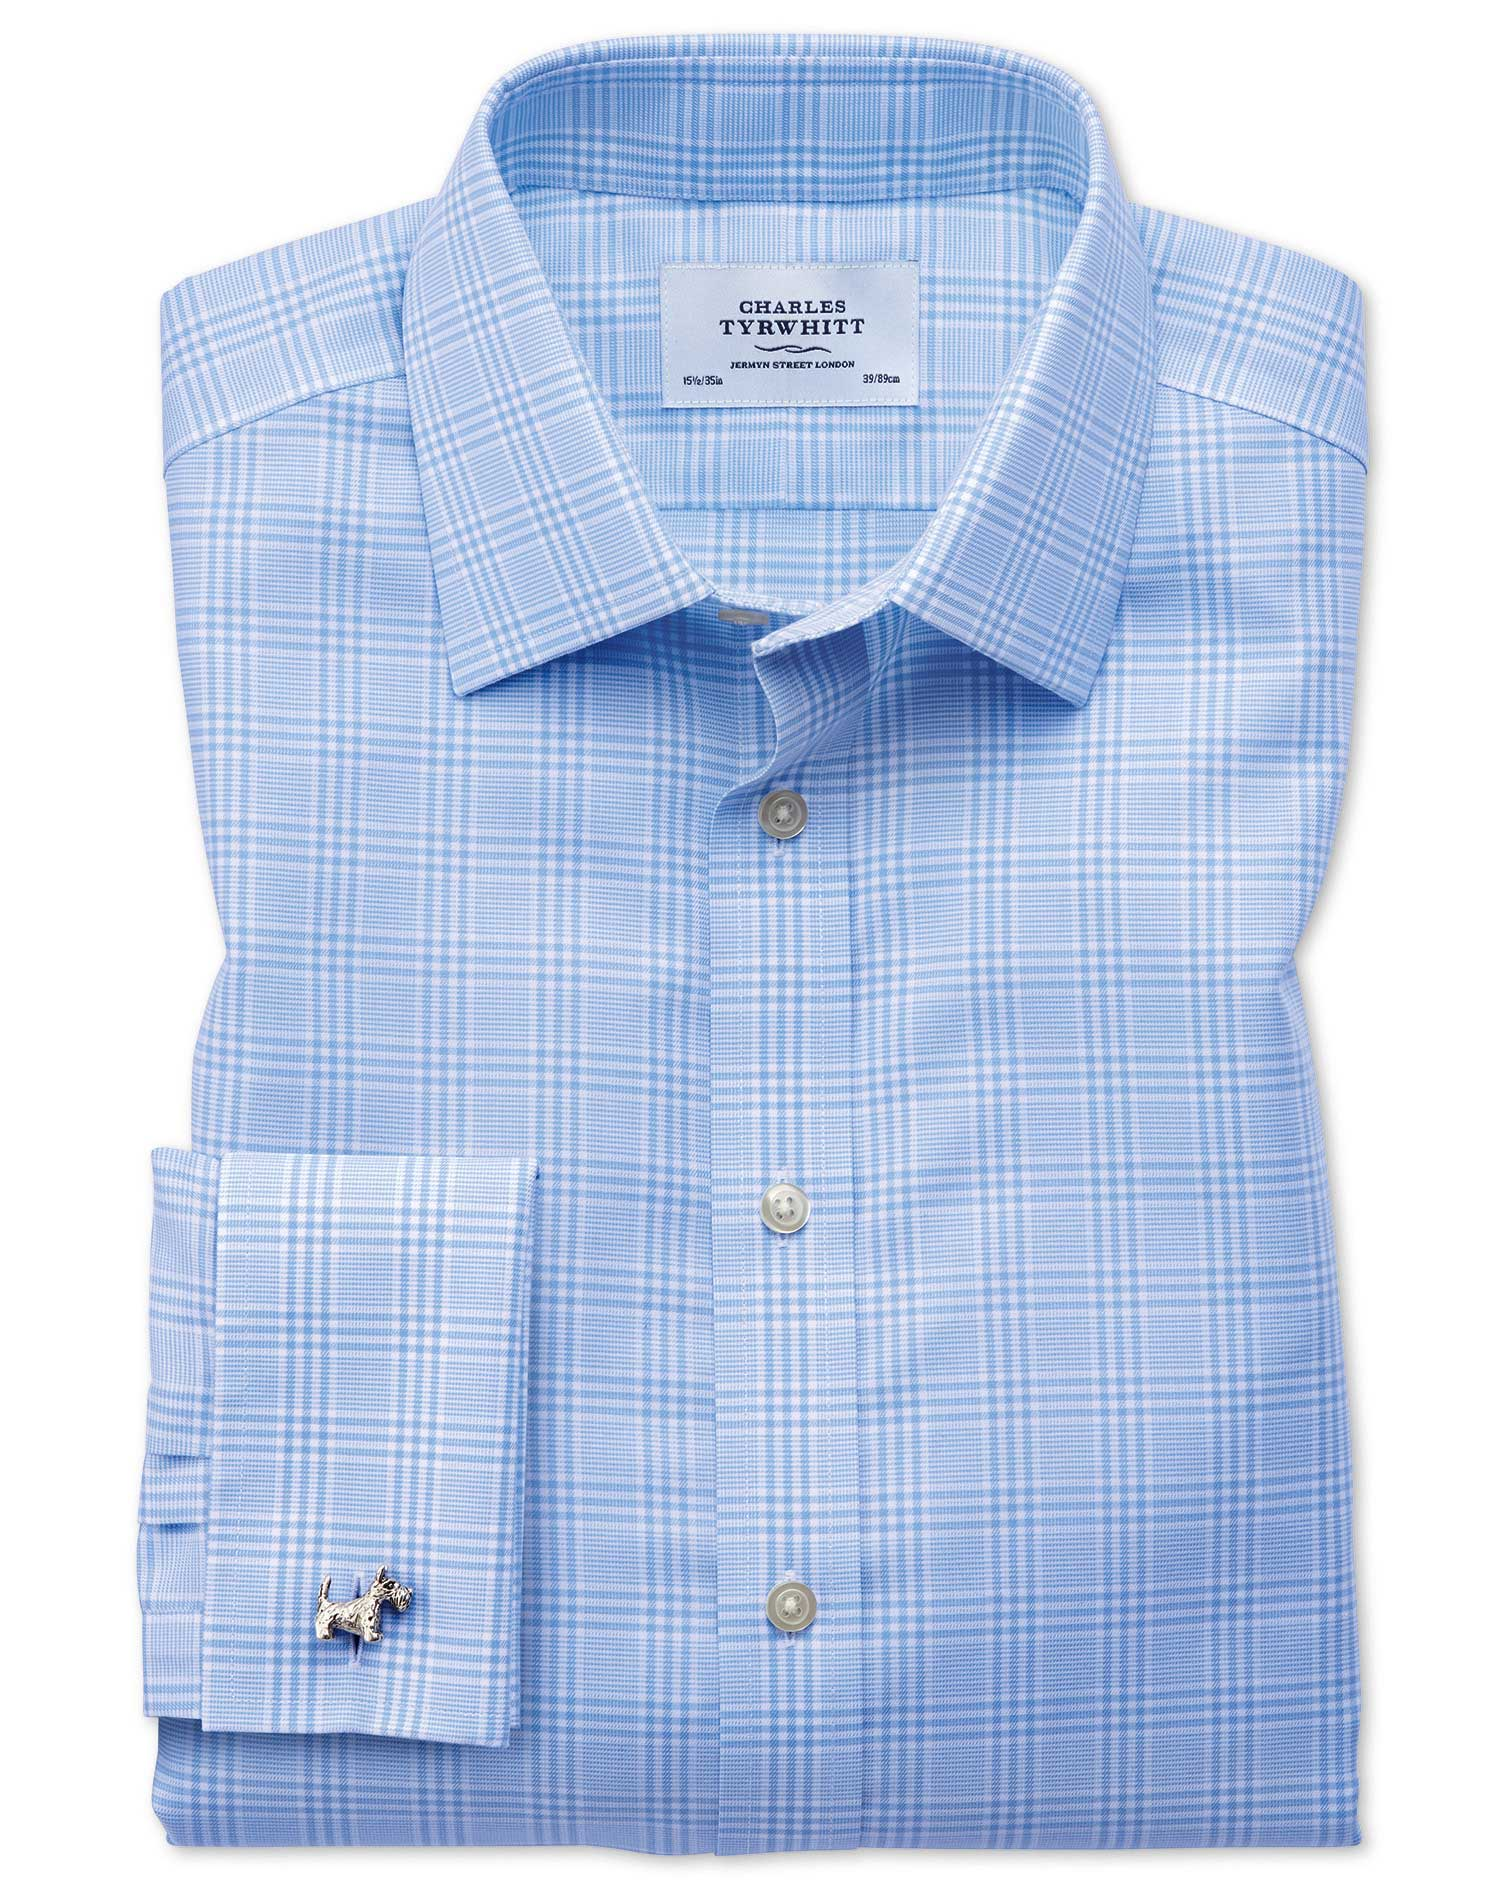 Classic Fit Non-Iron Prince Of Wales Sky Blue Cotton Formal Shirt Single Cuff Size 20/37 by Charles